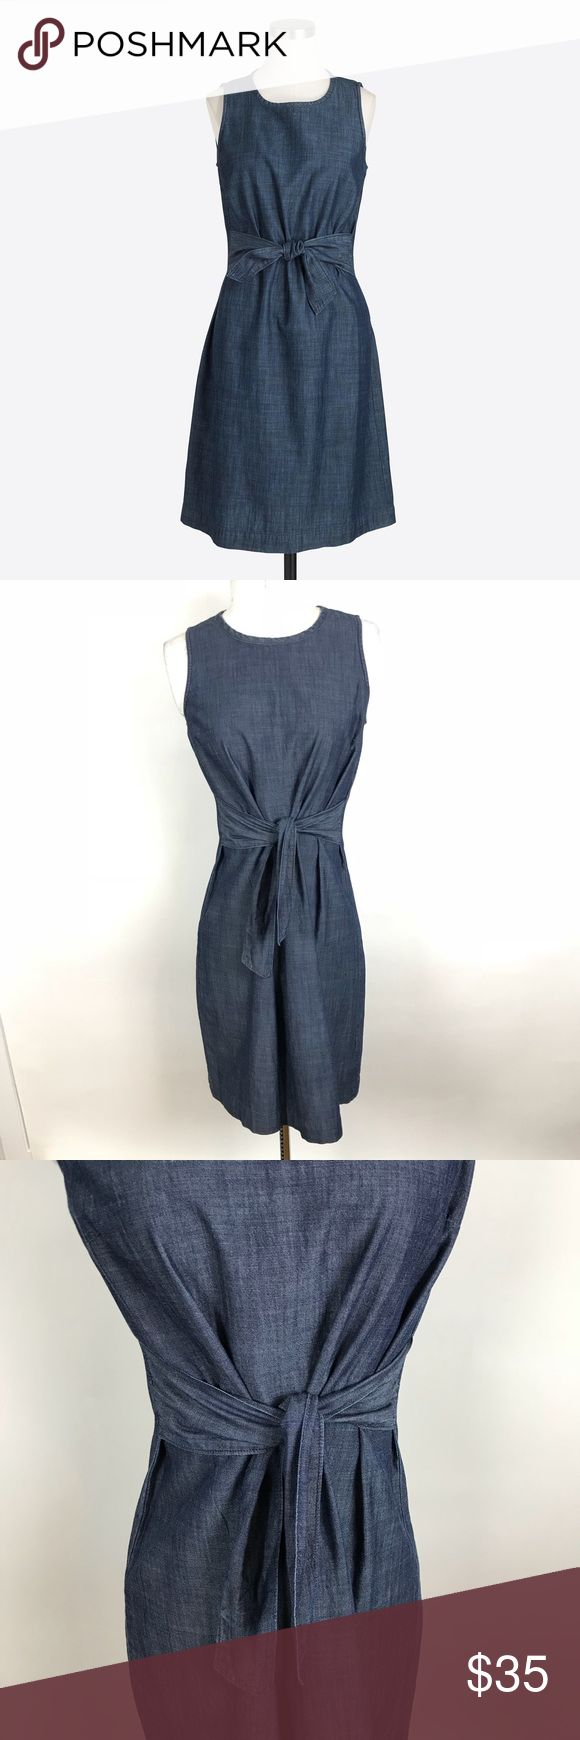 """J. CREW FACTORY 